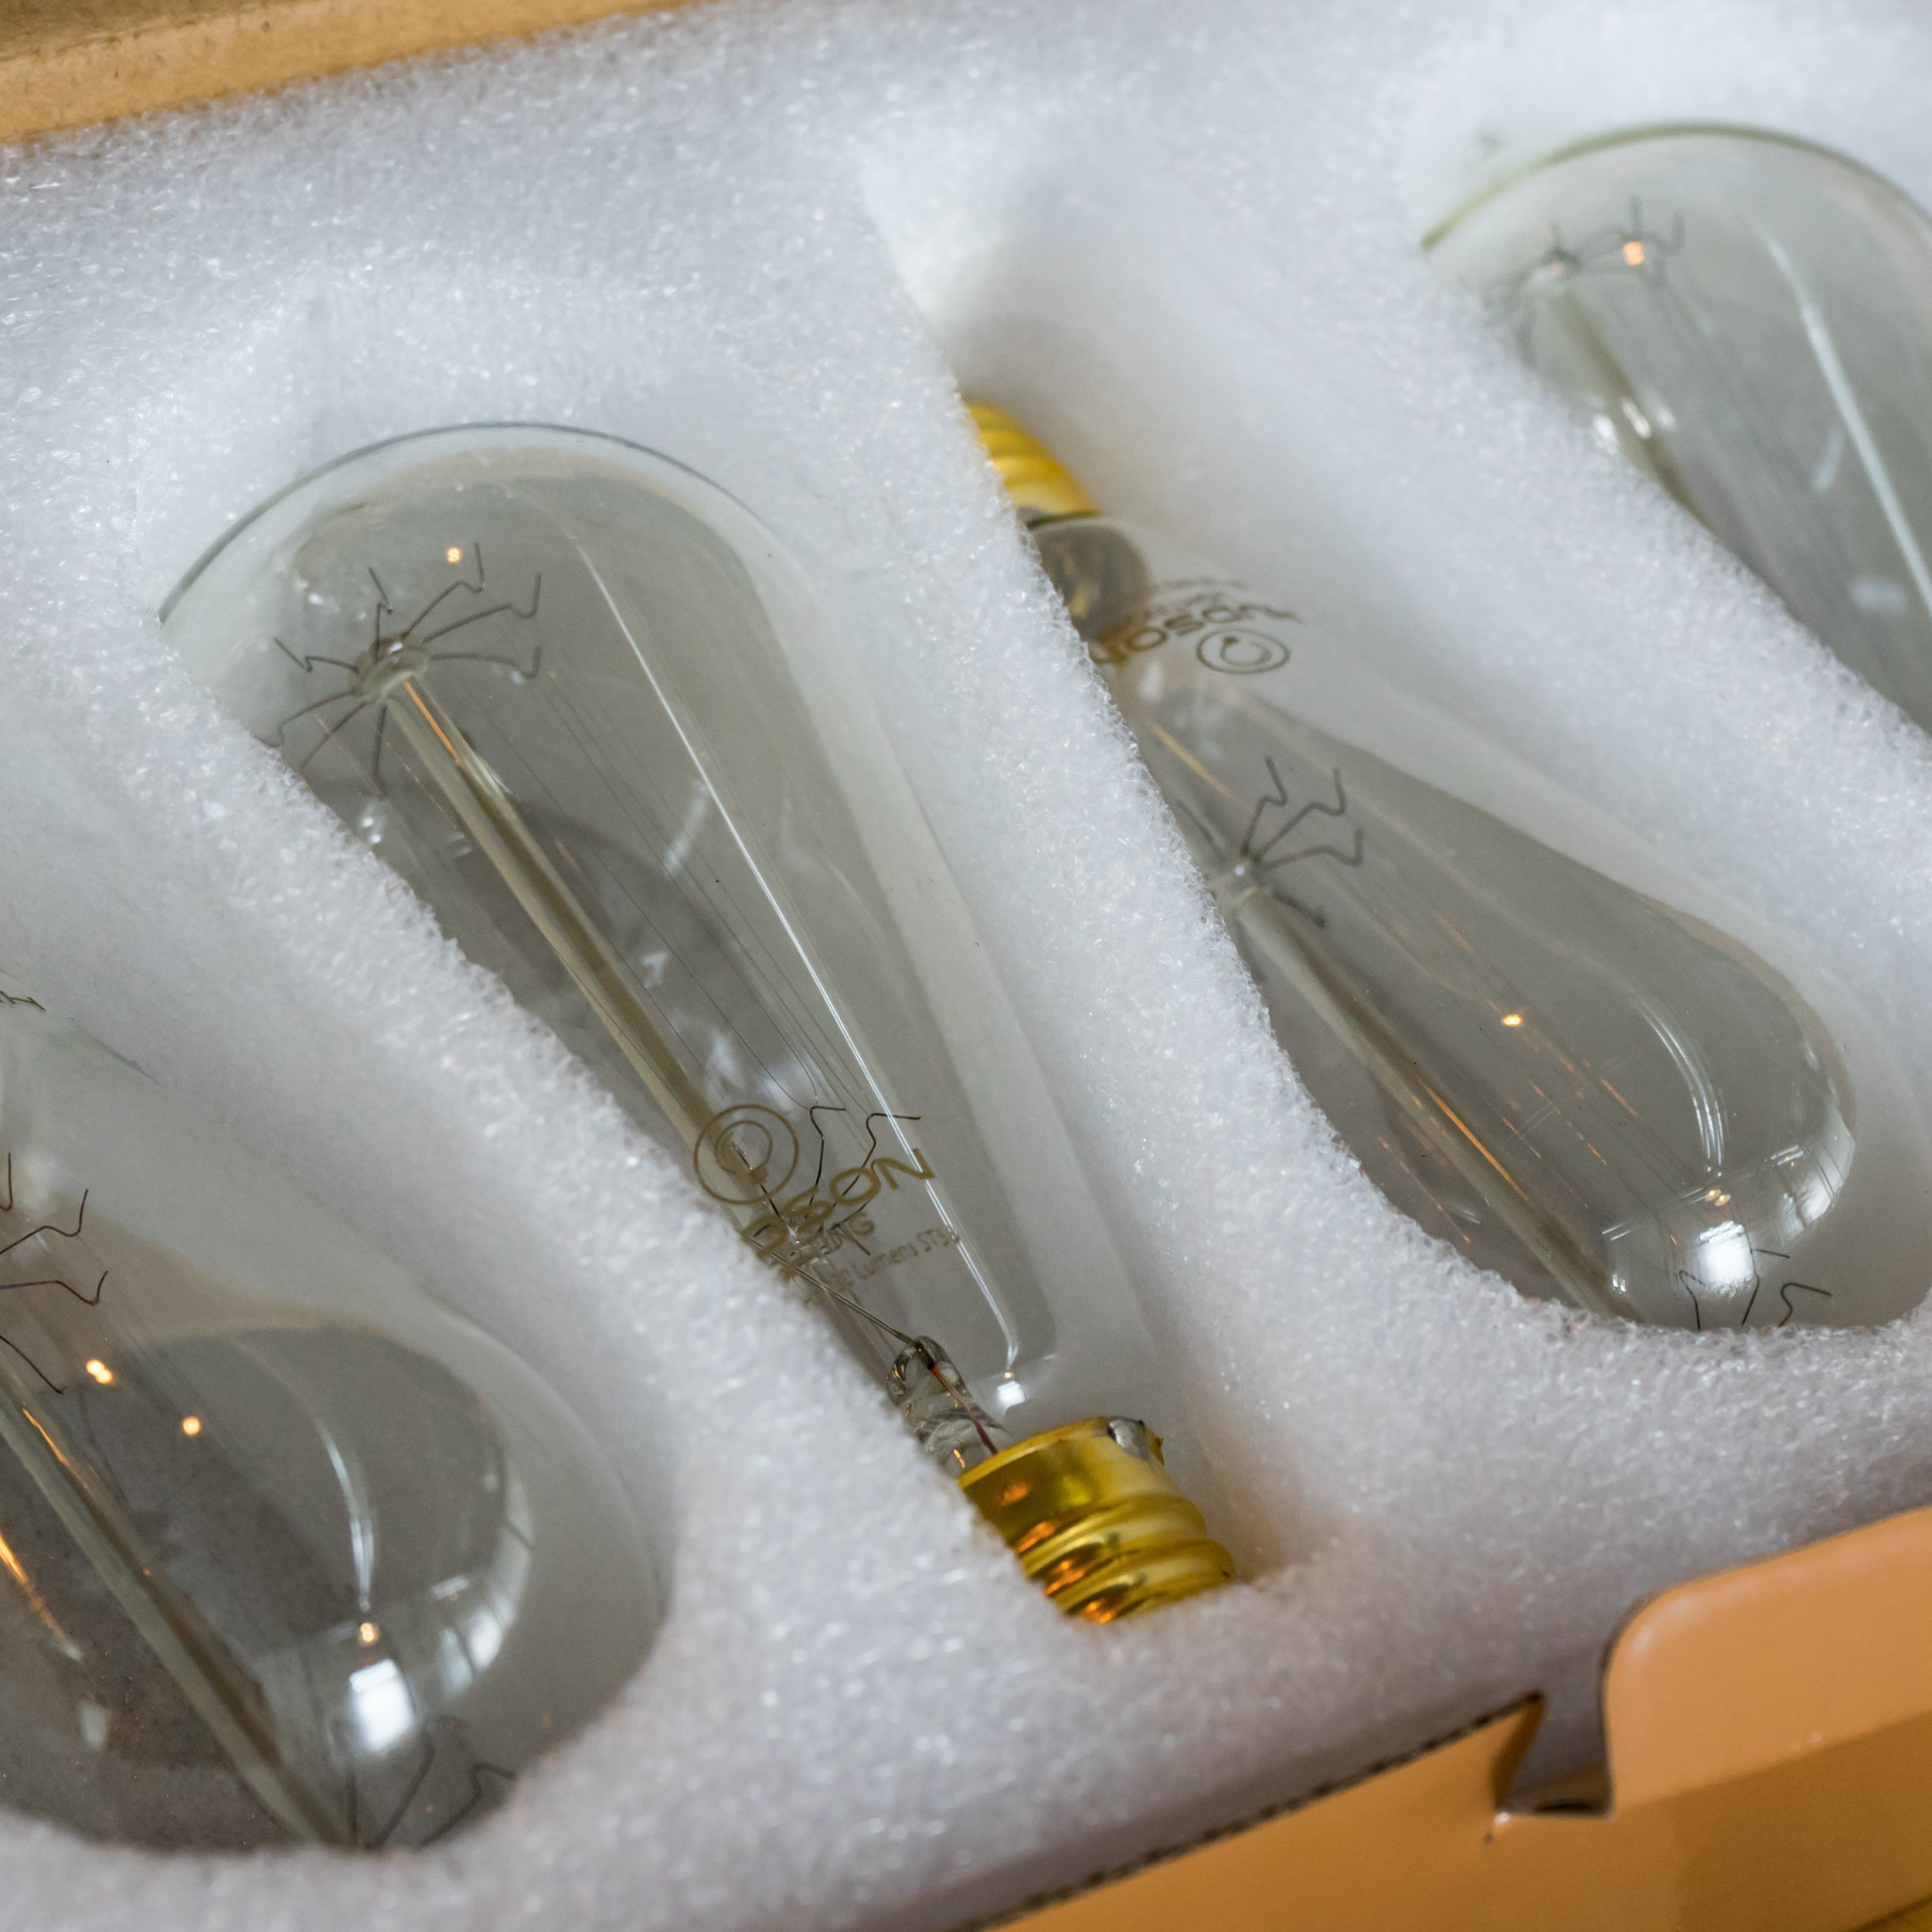 Vintage Incandescent Edison Bulb Set: 60 Watt, 2100K Warm White Edison Light Bulbs - E26 Base - 230 Lumens - Clear Glass - Dimmable Antique Exposed Filament - ST58 Decorative Lightbulbs - 4 Pack by HUDSON LIGHTING (Image #6)